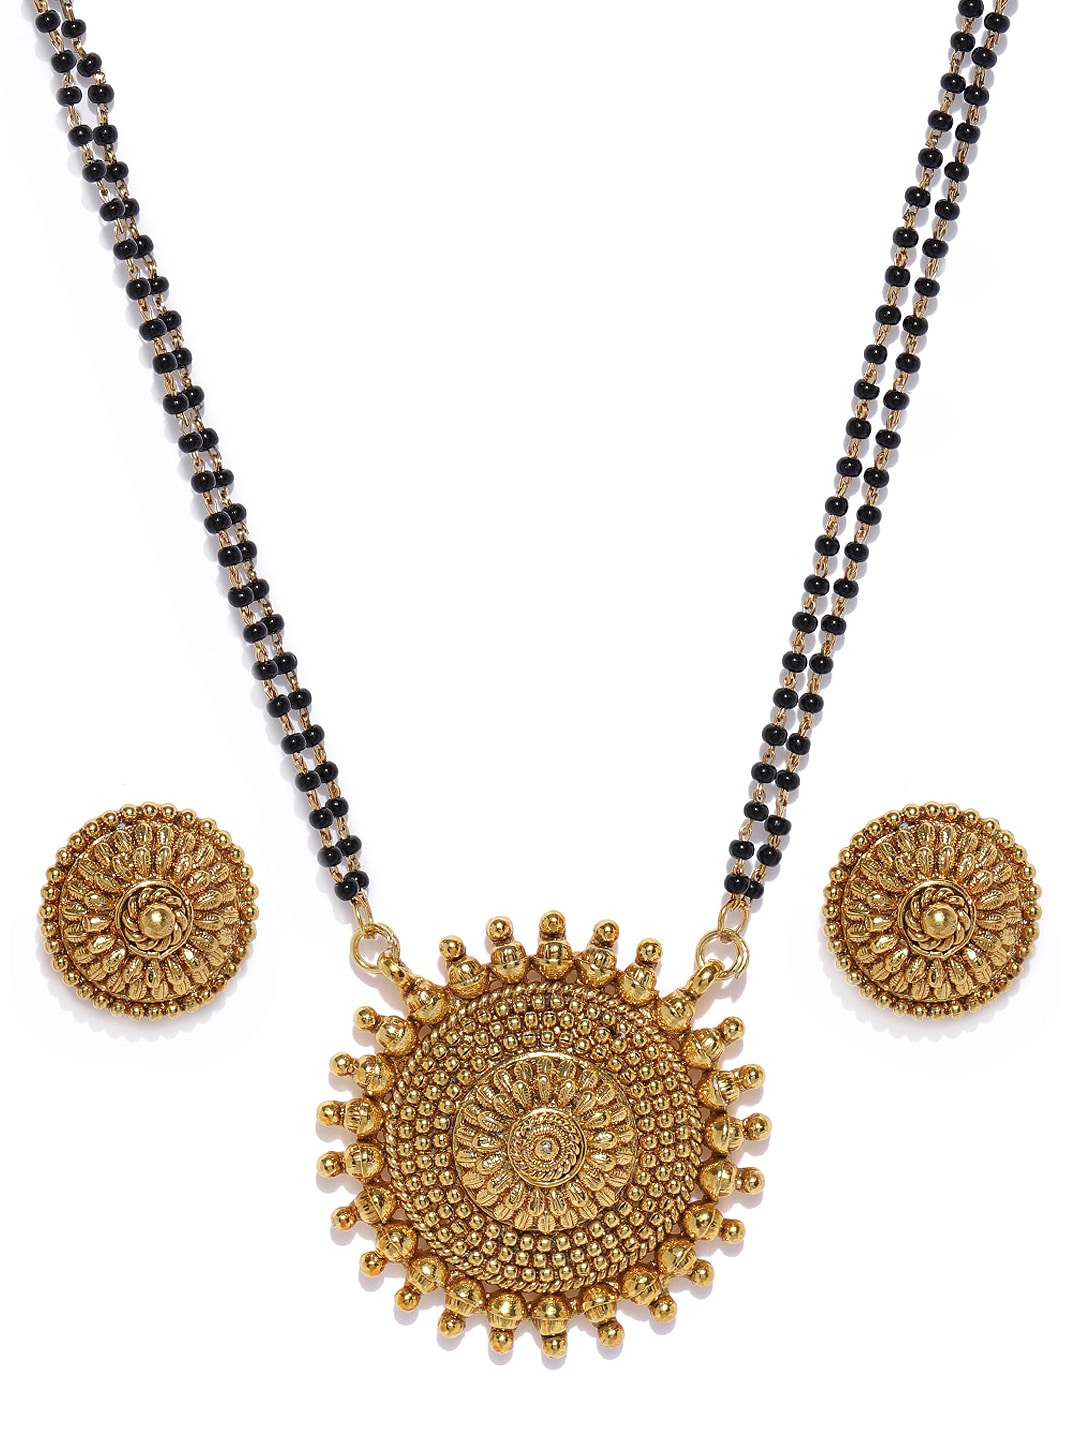 670df316bc Mangalsutra Compact - Buy Mangalsutra Compact online in India